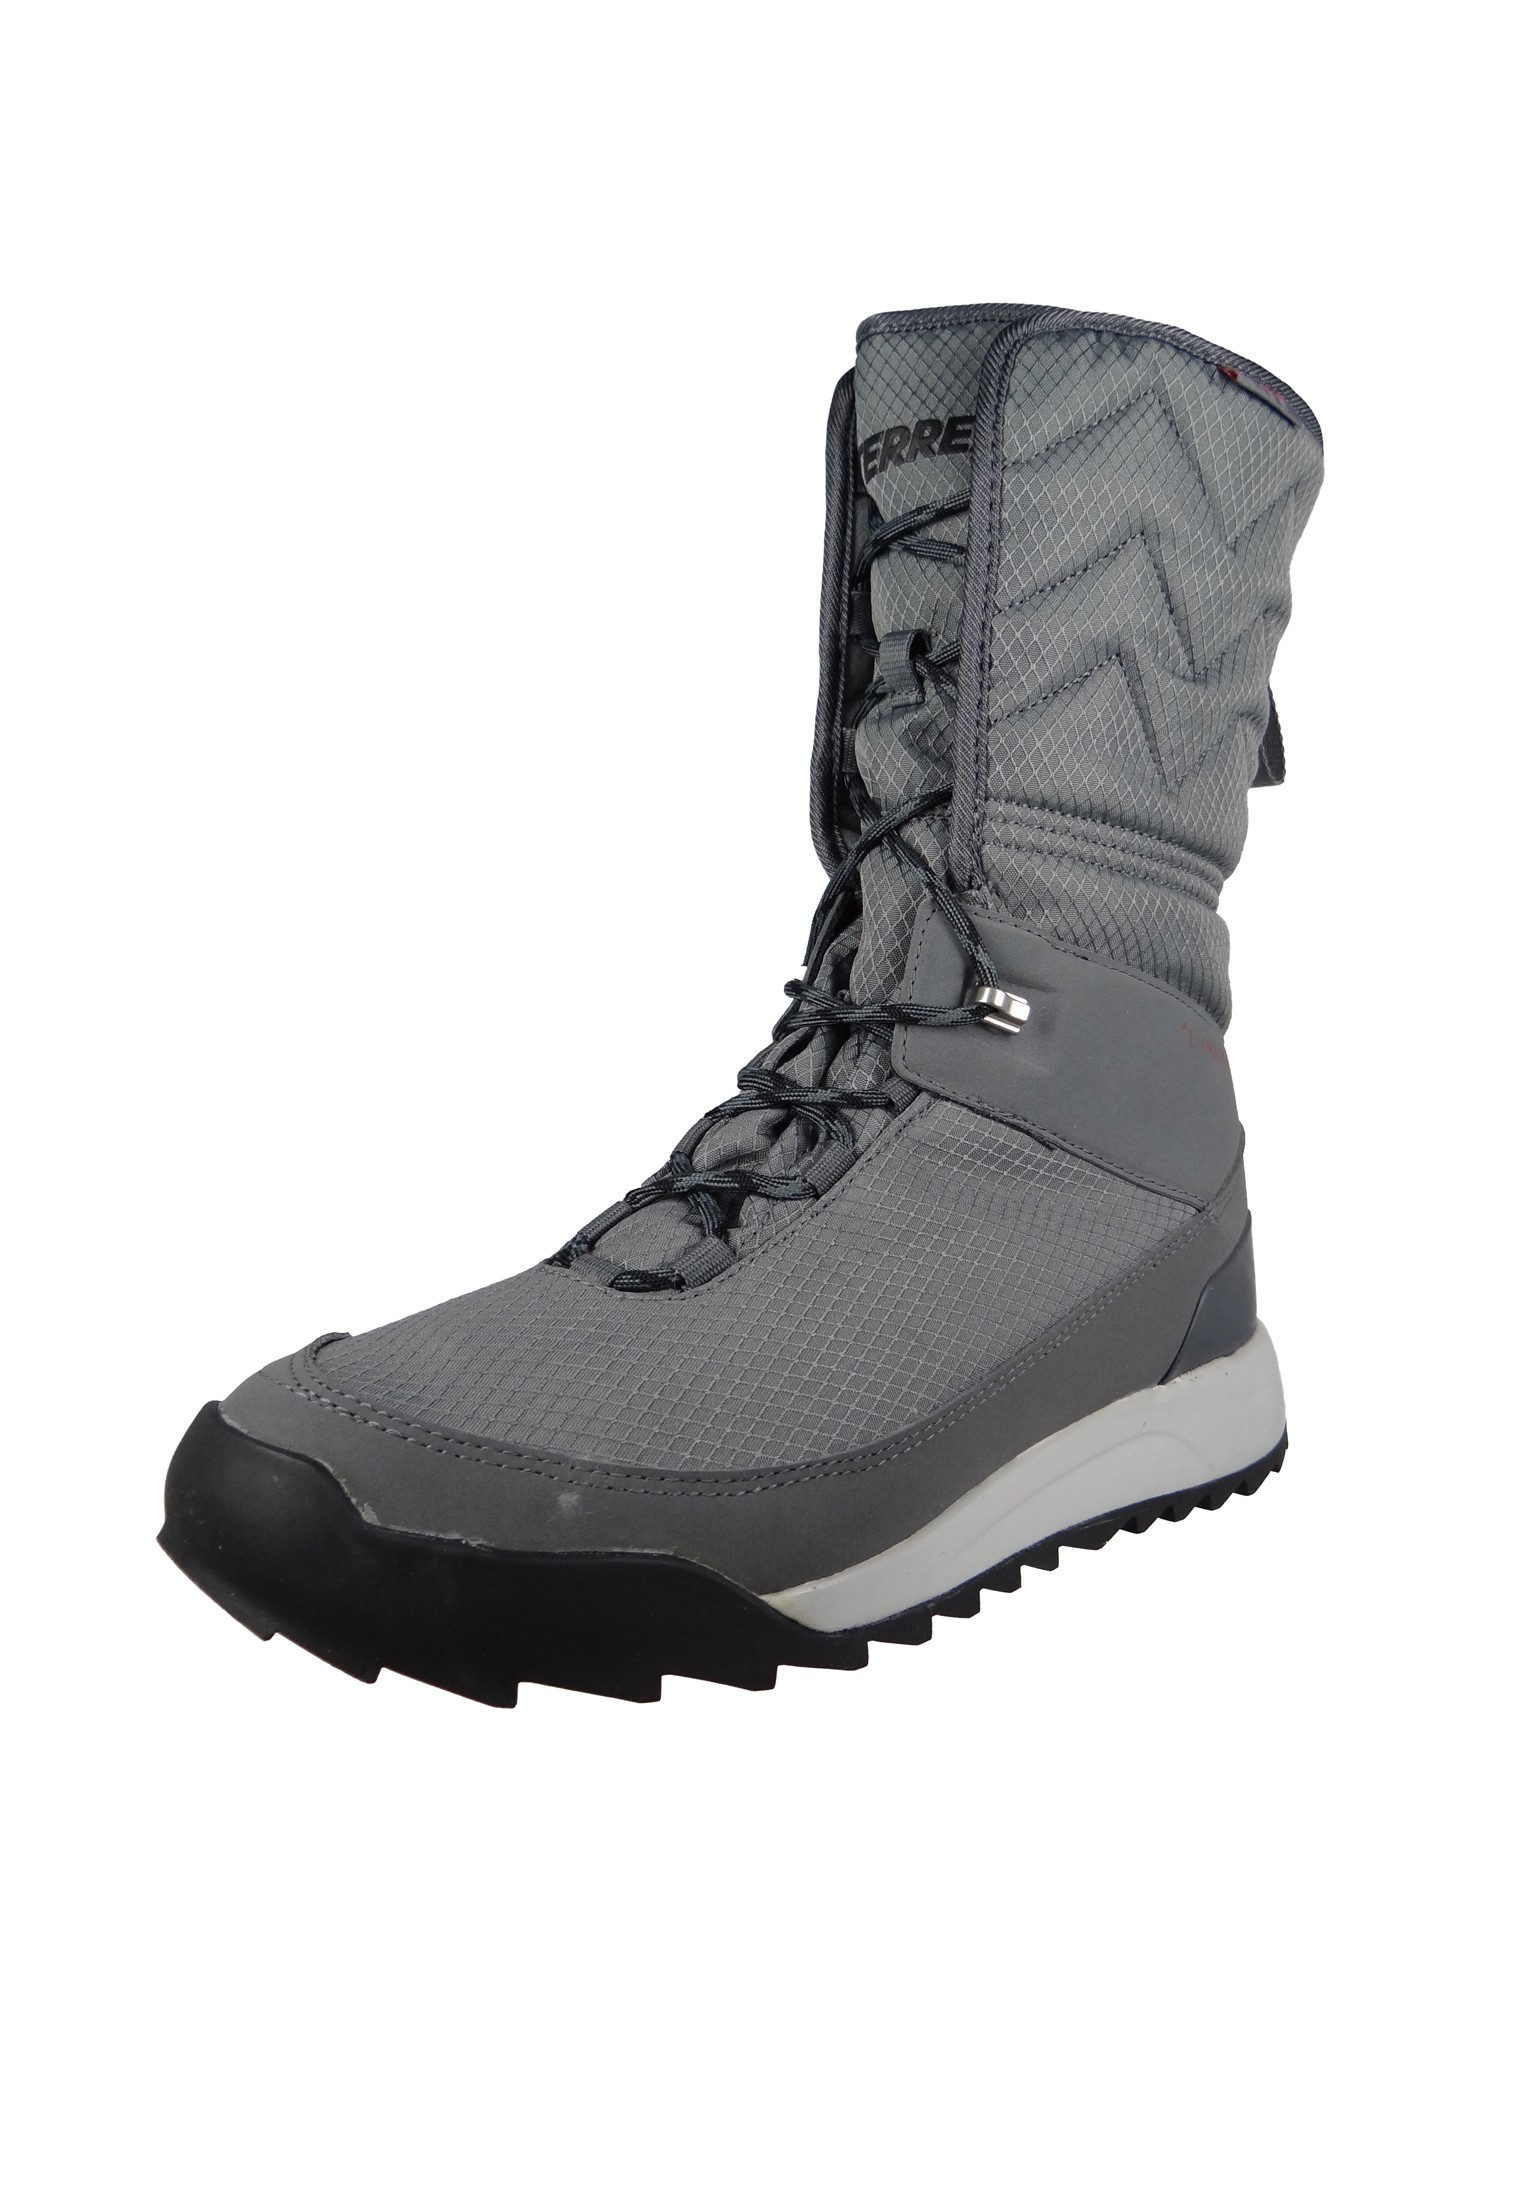 online store 63688 31790 adidas Damen Winterstiefel Boots CHOLEAH HIGH CP S80743 Grau - grey four  f17/grey five 17/core black